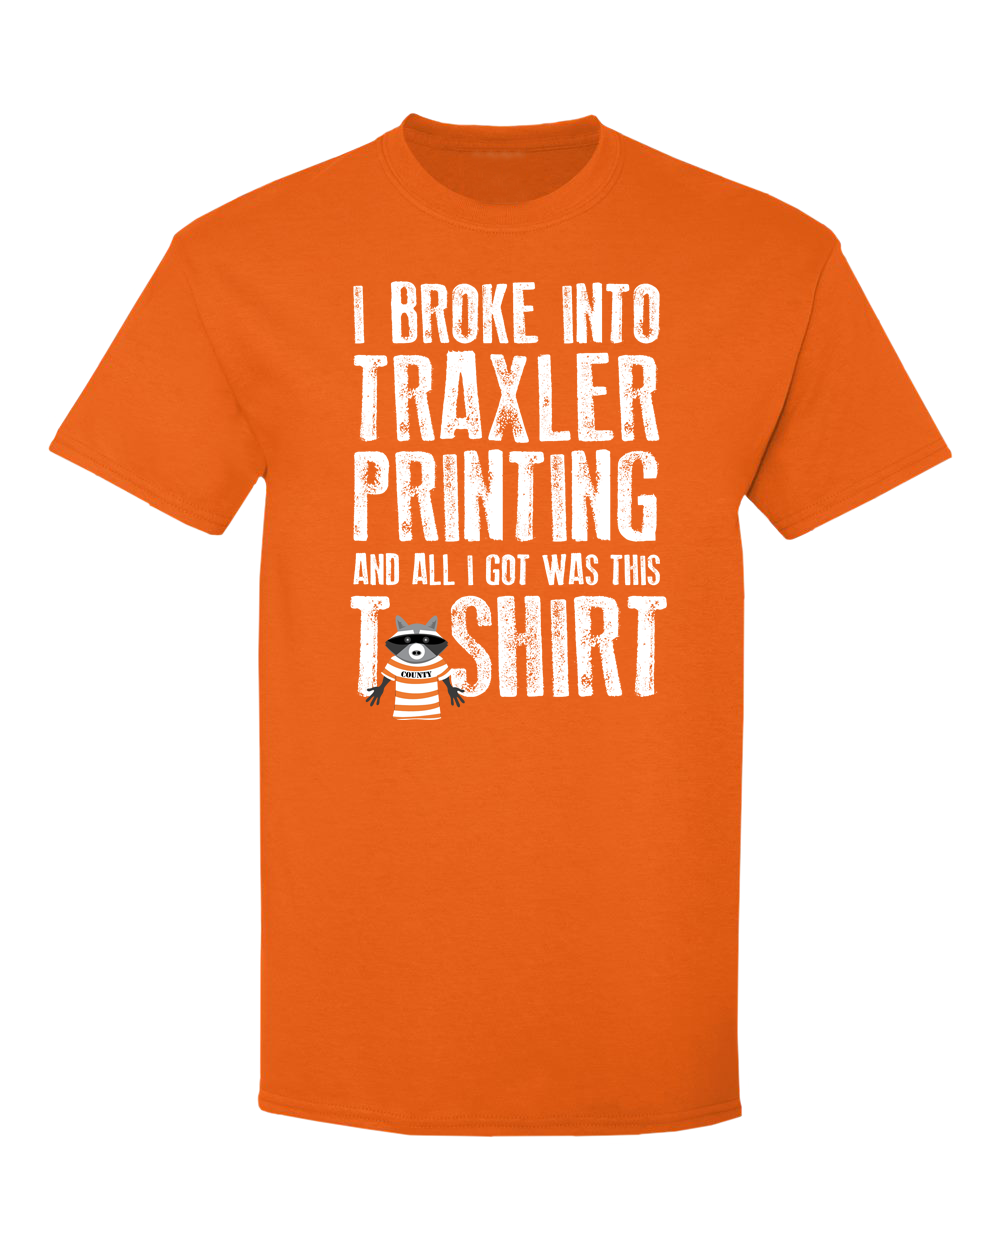 I Broke Into Traxler Printing and All I Got Was This T-Shirt